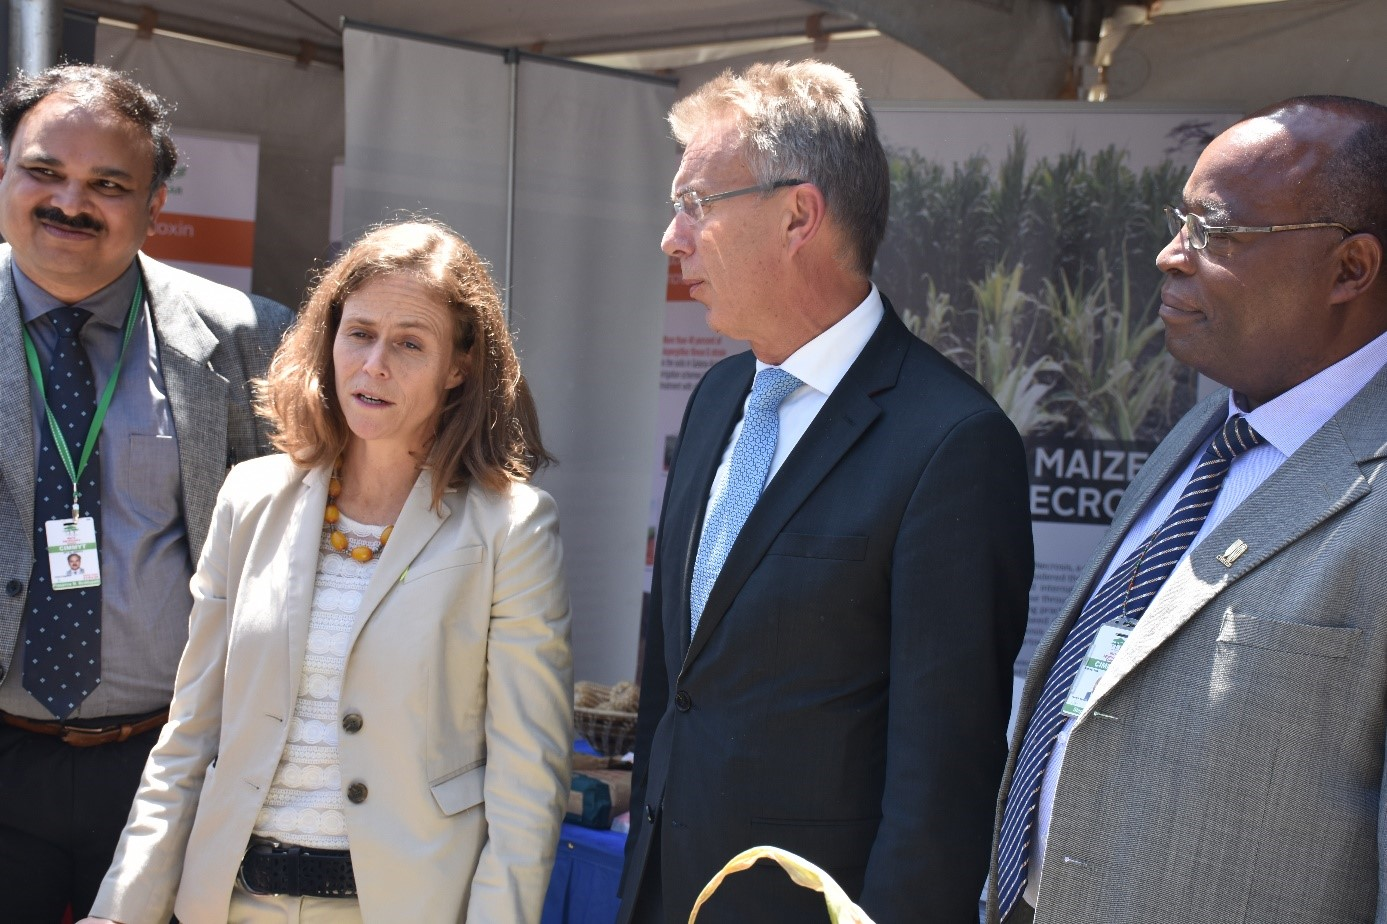 B.M. Prasanna, Martin Kropff and Stephen Mugo brief Beth Dunford, assistant to the administrator of USAID's Bureau for Food Security, on CIMMYT's work at a KALRO/USAID event during AGRF. Photo: B. Wawa/CIMMYT